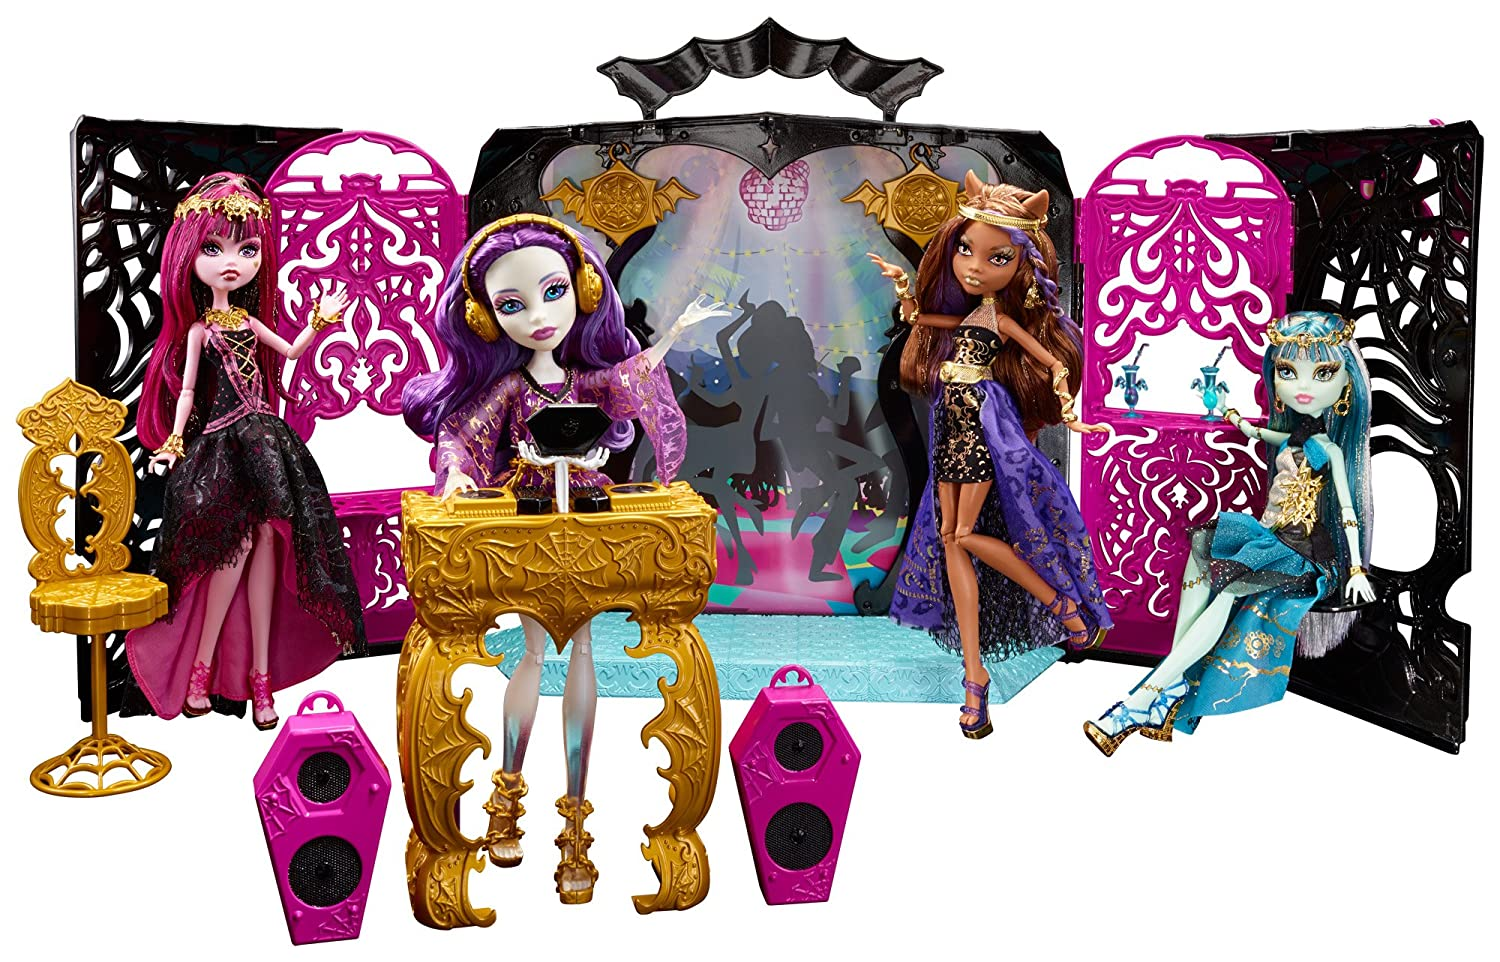 Amazon.es: Monster High - Fiesta monstruosa, pack de muñeca con ...